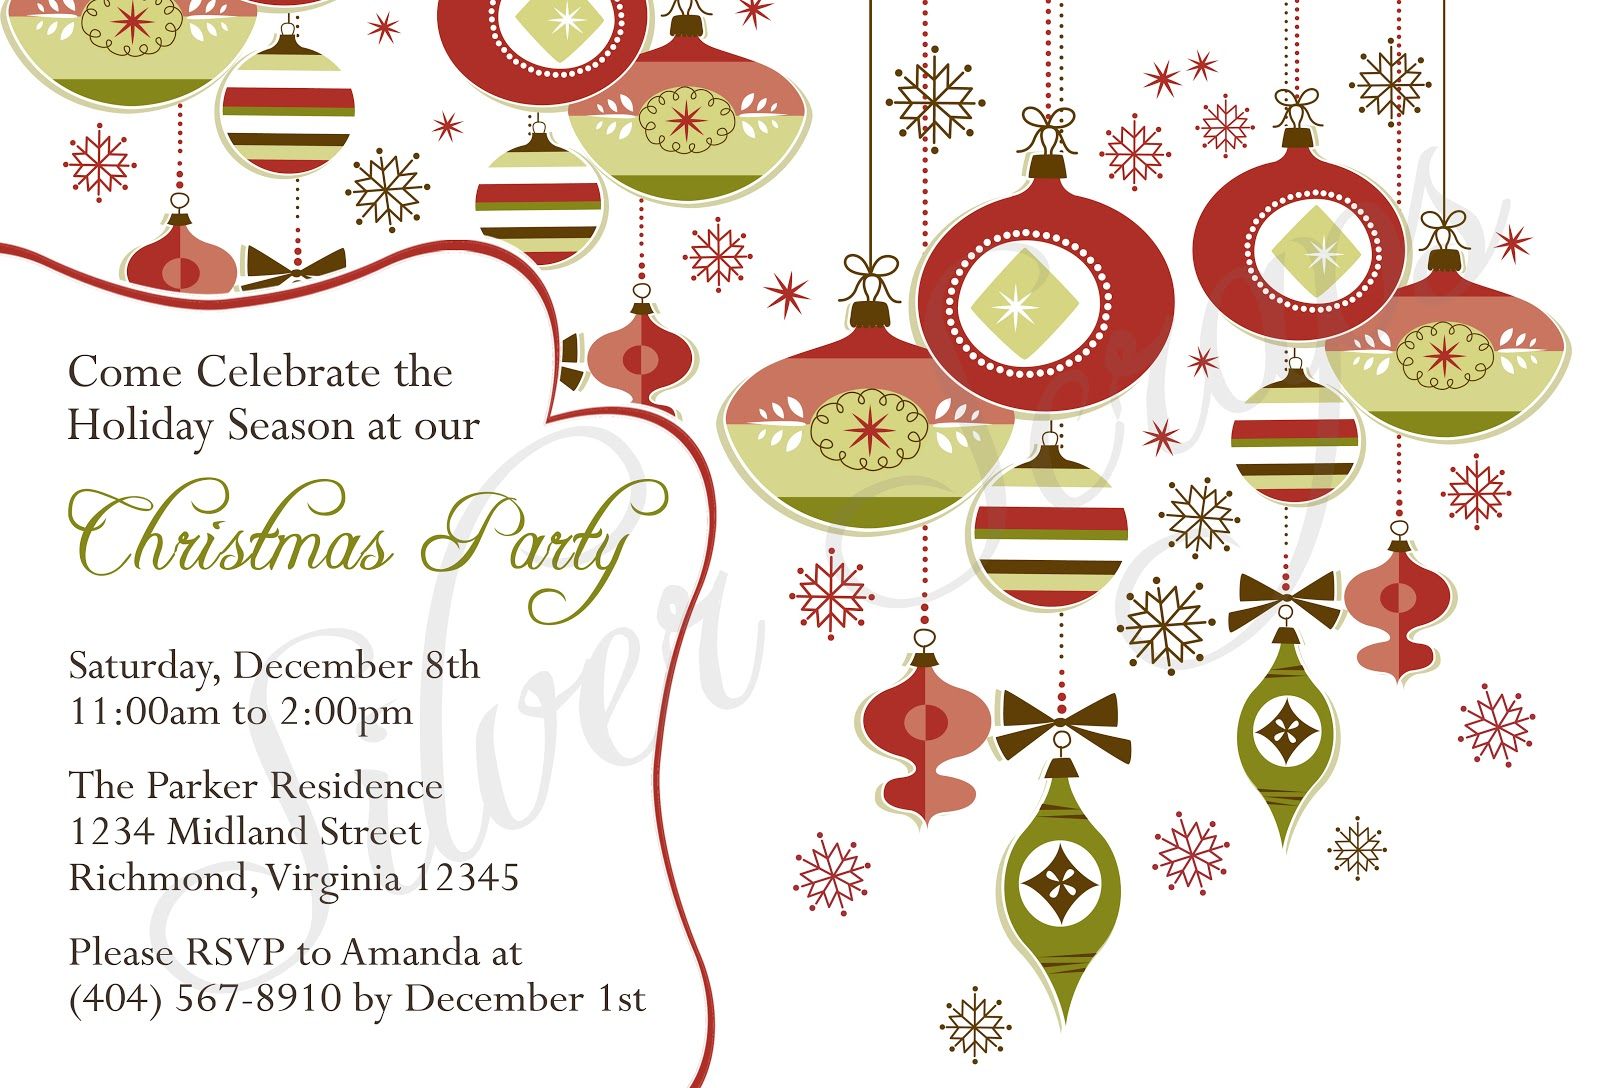 invitations for holiday party mickey mouse invitations templates christmas holiday party and dinner invitation card design ideas to